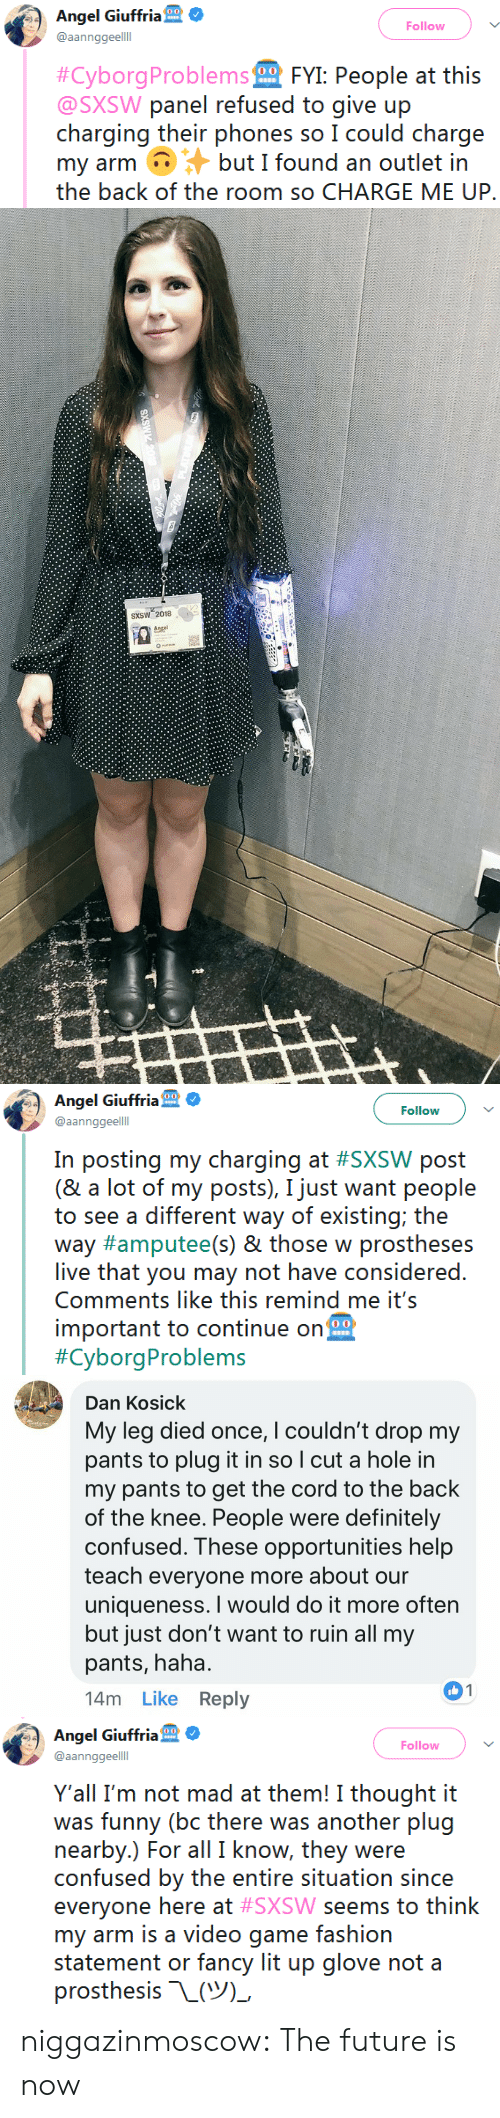 amputee: Angel Giuffria  @aannggeelll  Follow  #Cyborg Probier  FYI: People at this  @SXSW panel refused to give up  chargirncj their phons soIcould charge  my arm but I found an outlet in  the back of the room so CHARGE ME UP.   SXSW 2018   Angel Giuffria  @aannggeelll  Follow  in positing my (harçing ai: #SXSW possi  (& a lot of my posts), I just want people  to see a different way of existing; the  way #amputee(s) & those w prostheses  live that you may not have considered.  Comments like this remind me it's  important to continue on  #CyborgProblems   Dan Kosick  My leg died once, Icouldn't drop my  pants to plug it in so l cut a hole in  my pants to get the cord to the back  of the Knee. People were definitely  confused. These opportunities help  teach everyone more about our  uniqueness. I would do it more ofter  but just don't want to ruin all my  pants, haha  14m Like Reply   Angel Giuffria  @aannggeelll  Follow  Y'all I'm not mad at them! I thought it  was funny (bc there was another plug  nearby.) For all I know, they were  confused by the entire situation since  everyone here at #SXSW seems to think  my arm is a video game fashion  statement or fancy lit up glove not a  prosthesis-L(ツー niggazinmoscow: The future is now